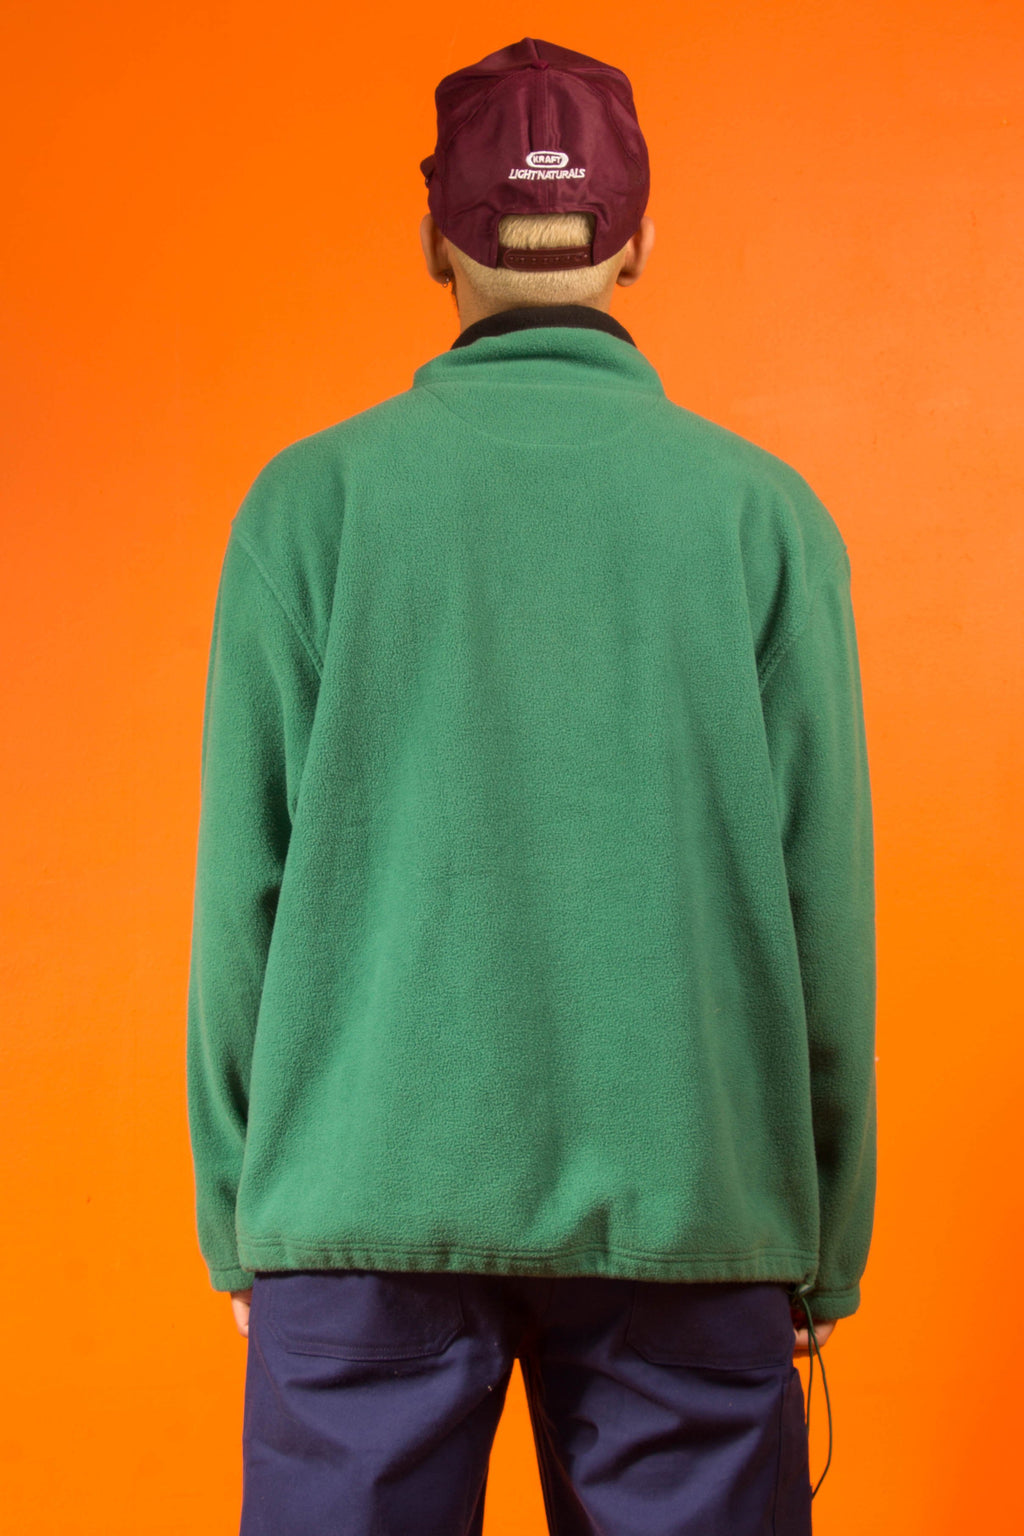 Vintage - Green Fleece Jacket